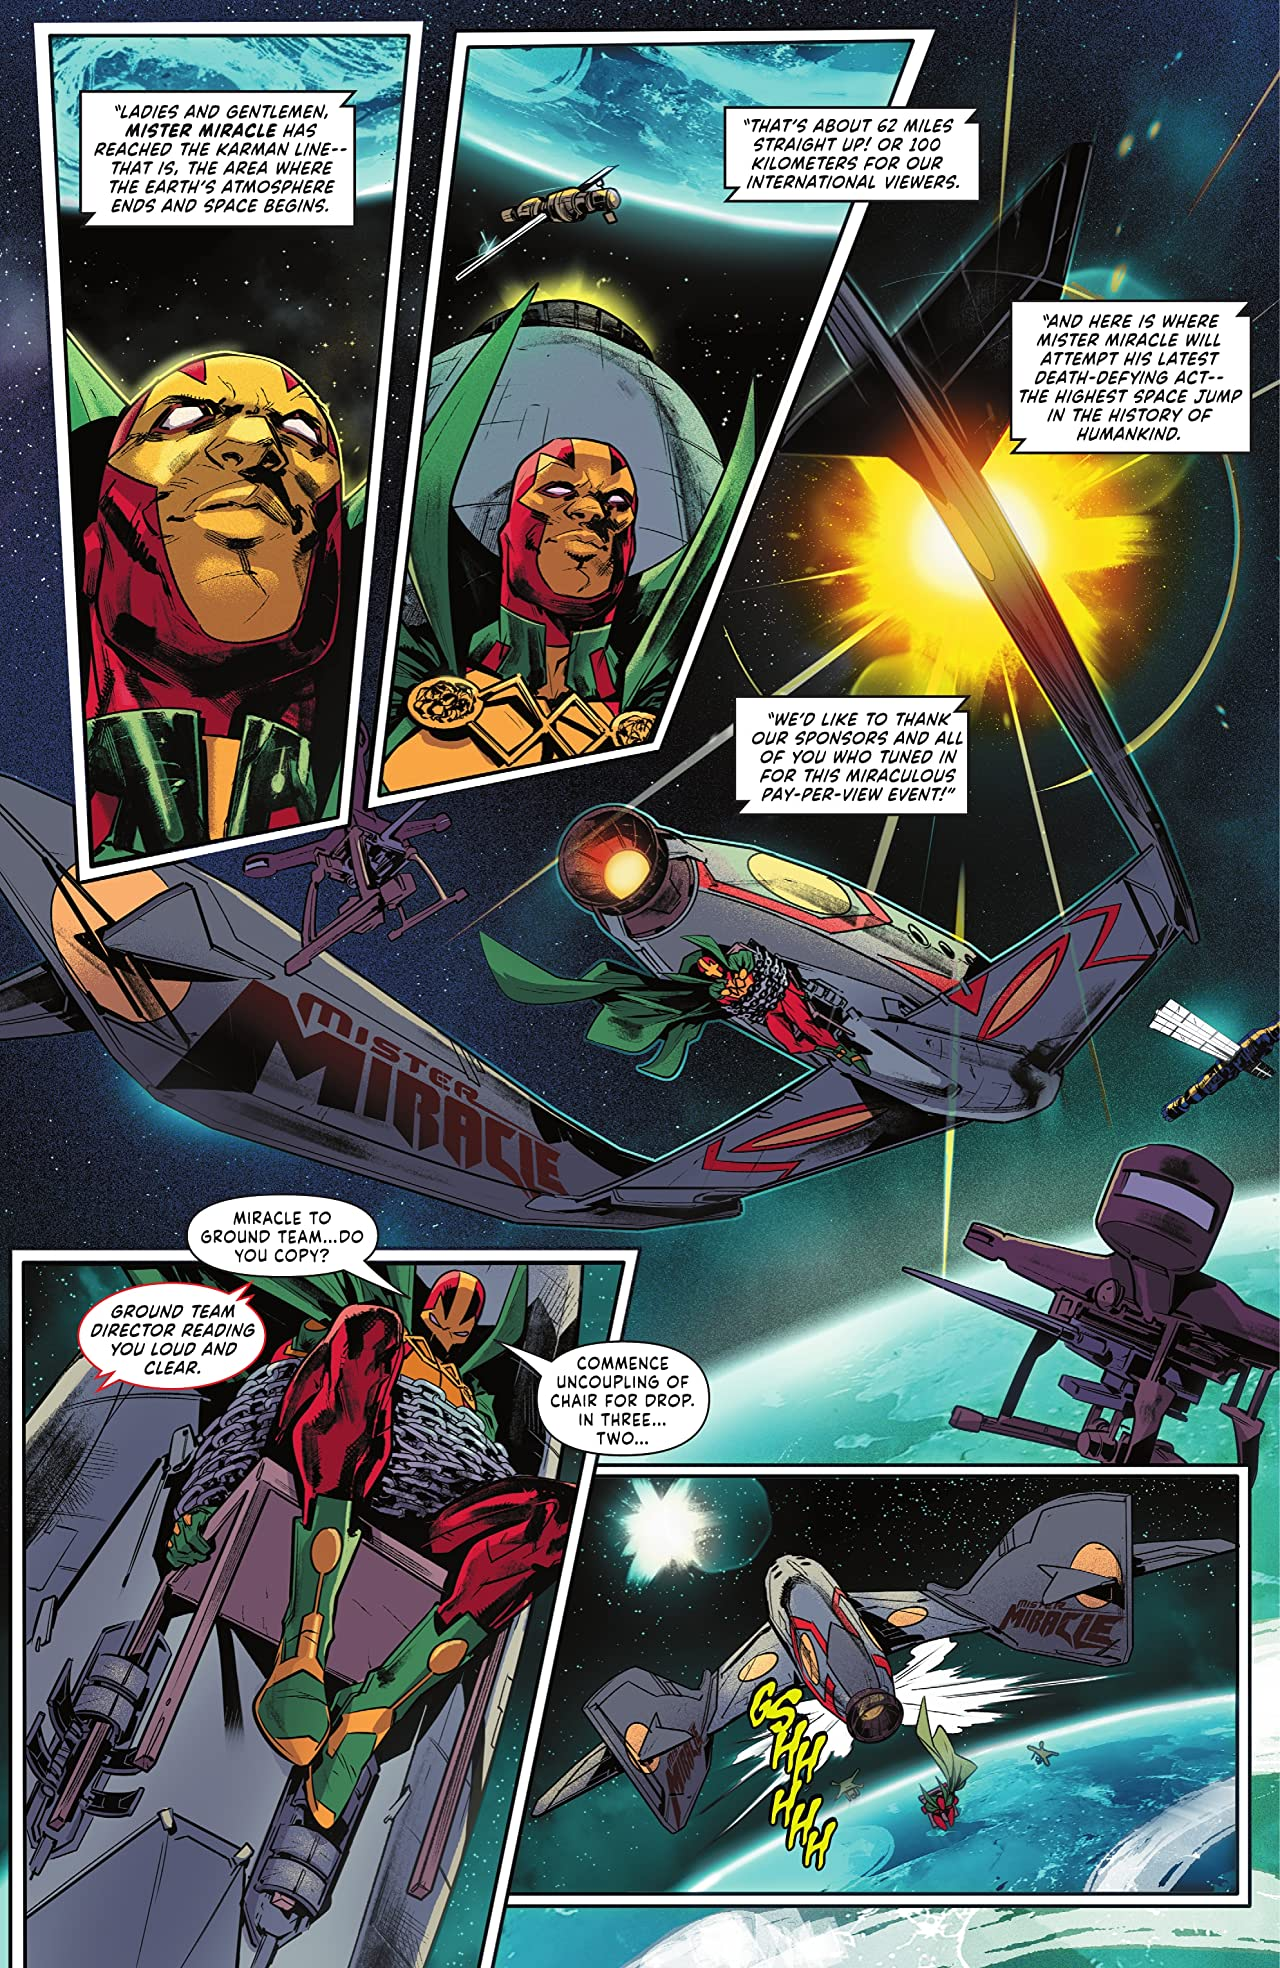 Mister Miracle (2021) #1: The Source of Freedom